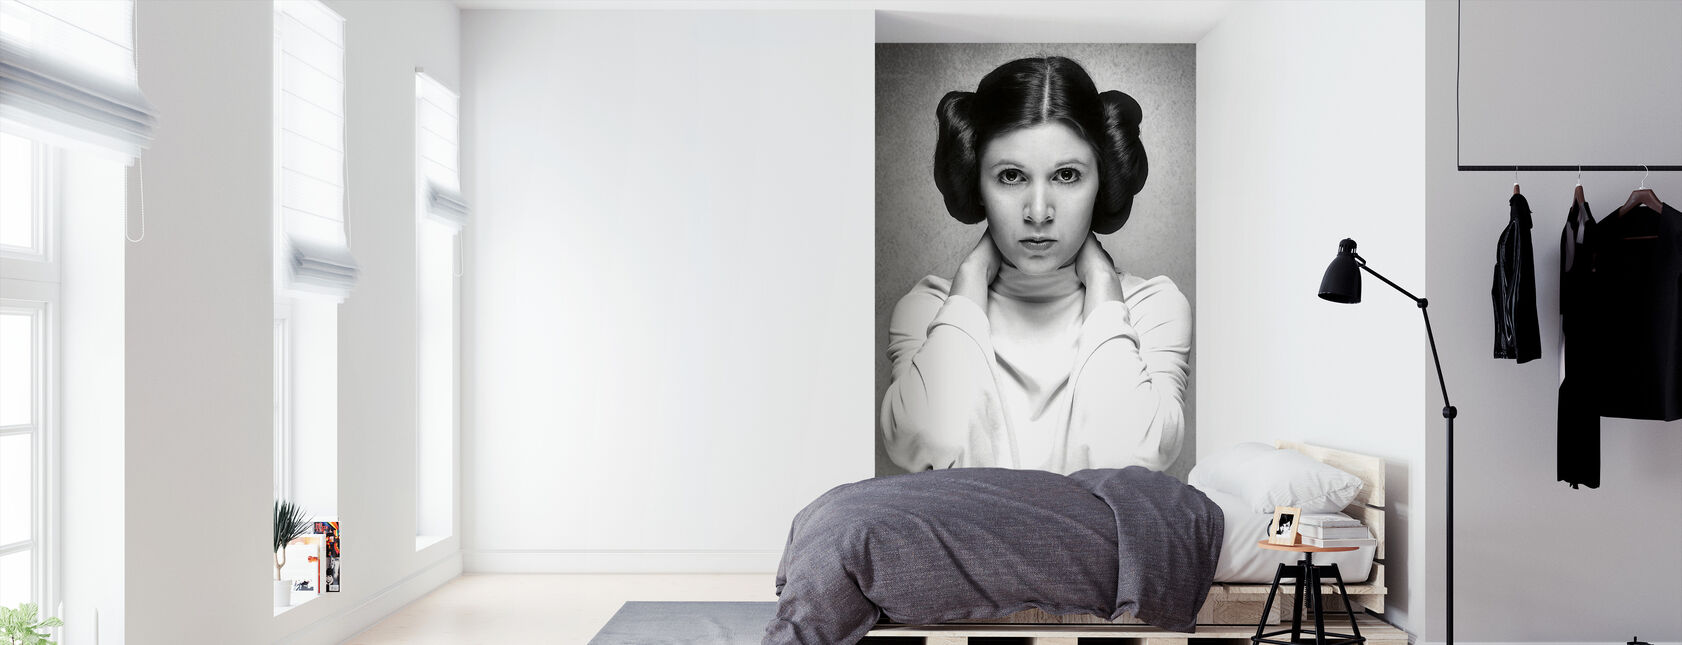 Princess Leia - Carrie Fisher - Wallpaper - Bedroom